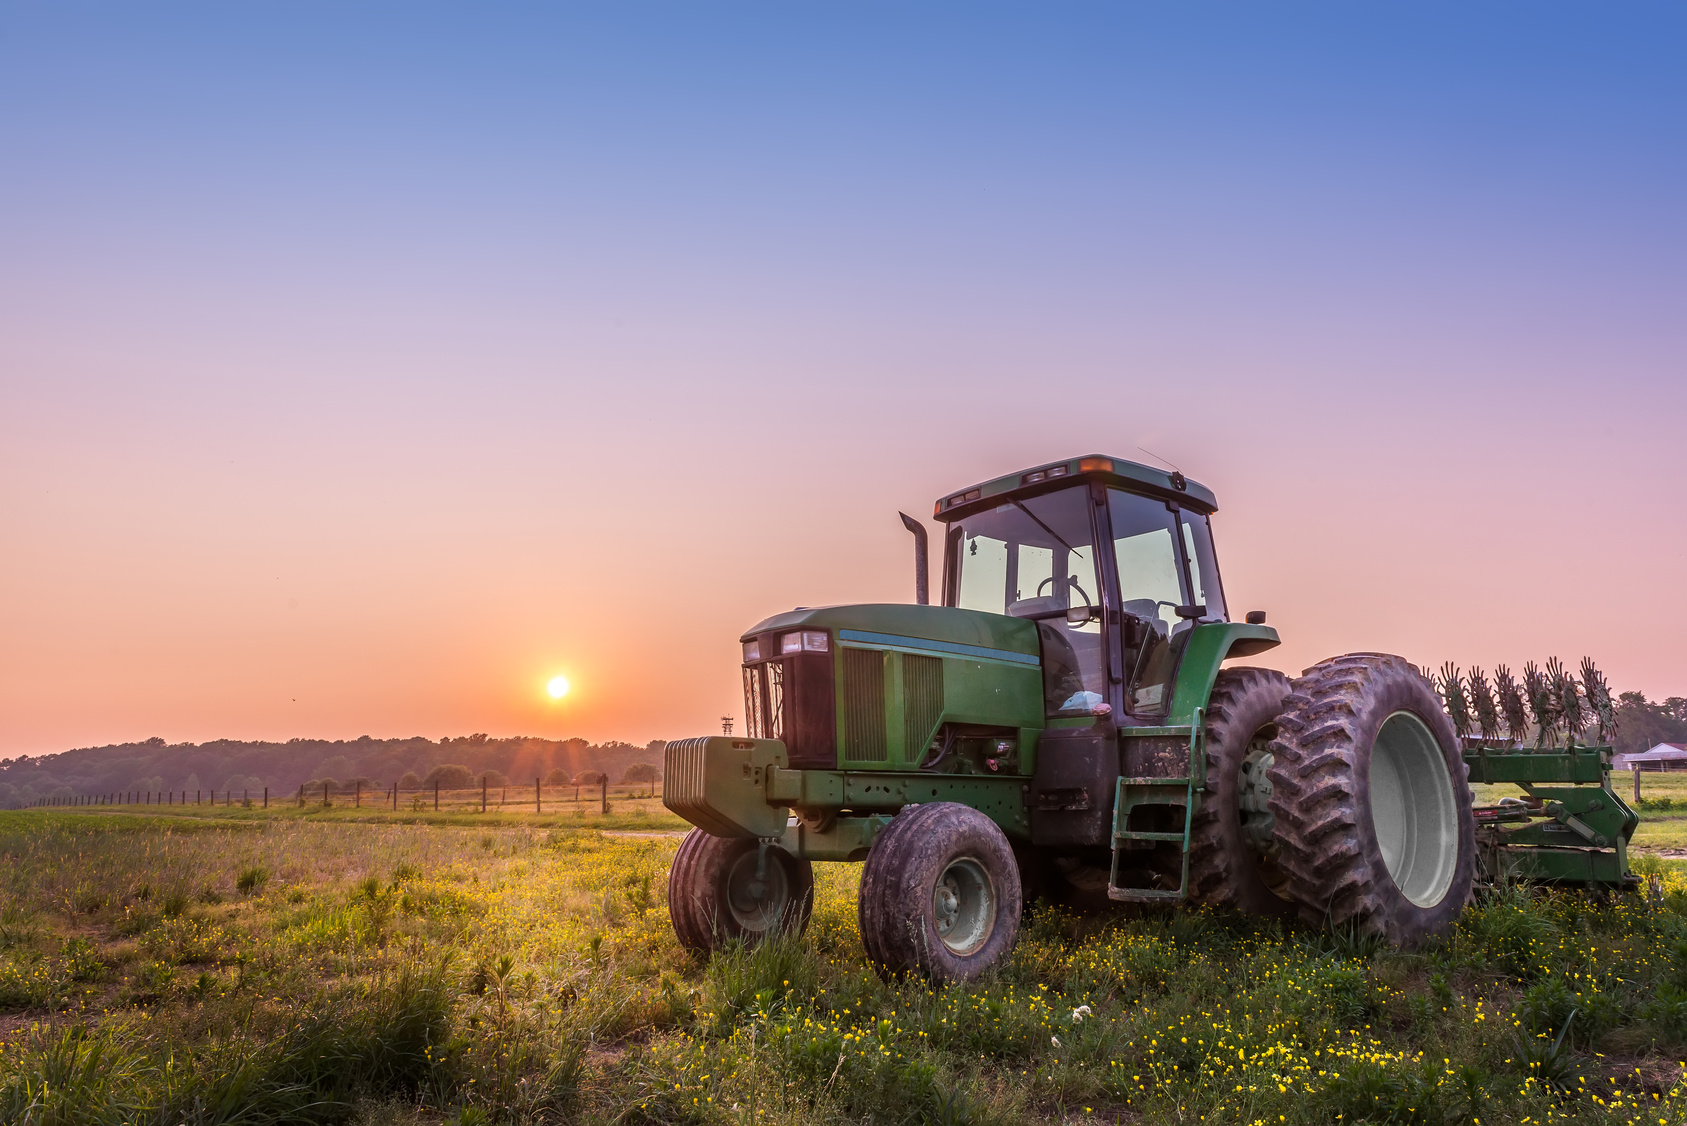 empty farm tractor in field with sun setting in background